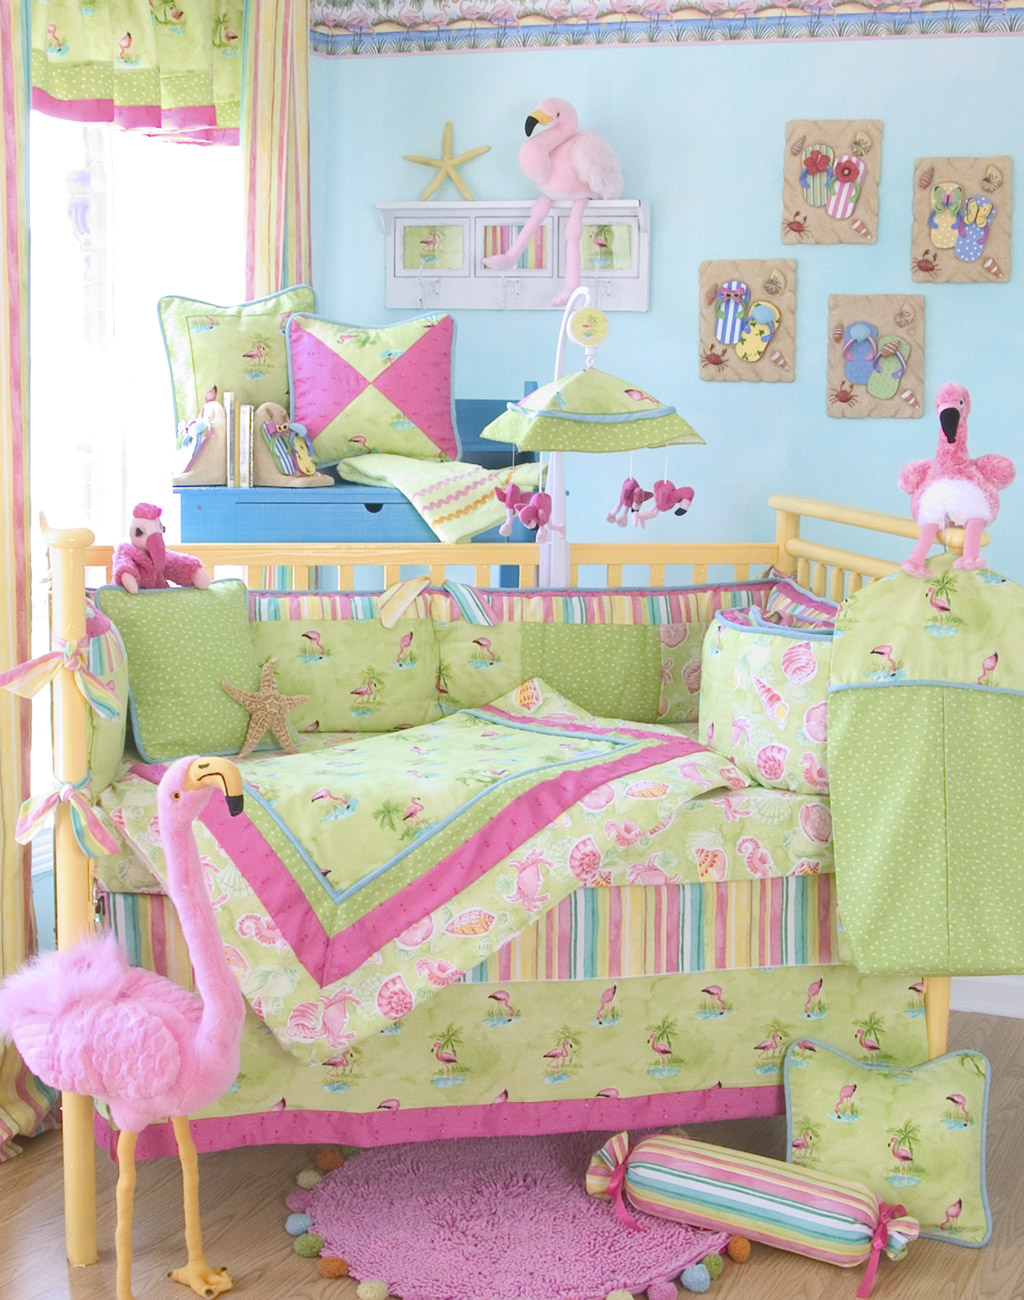 Baby bedding part-1